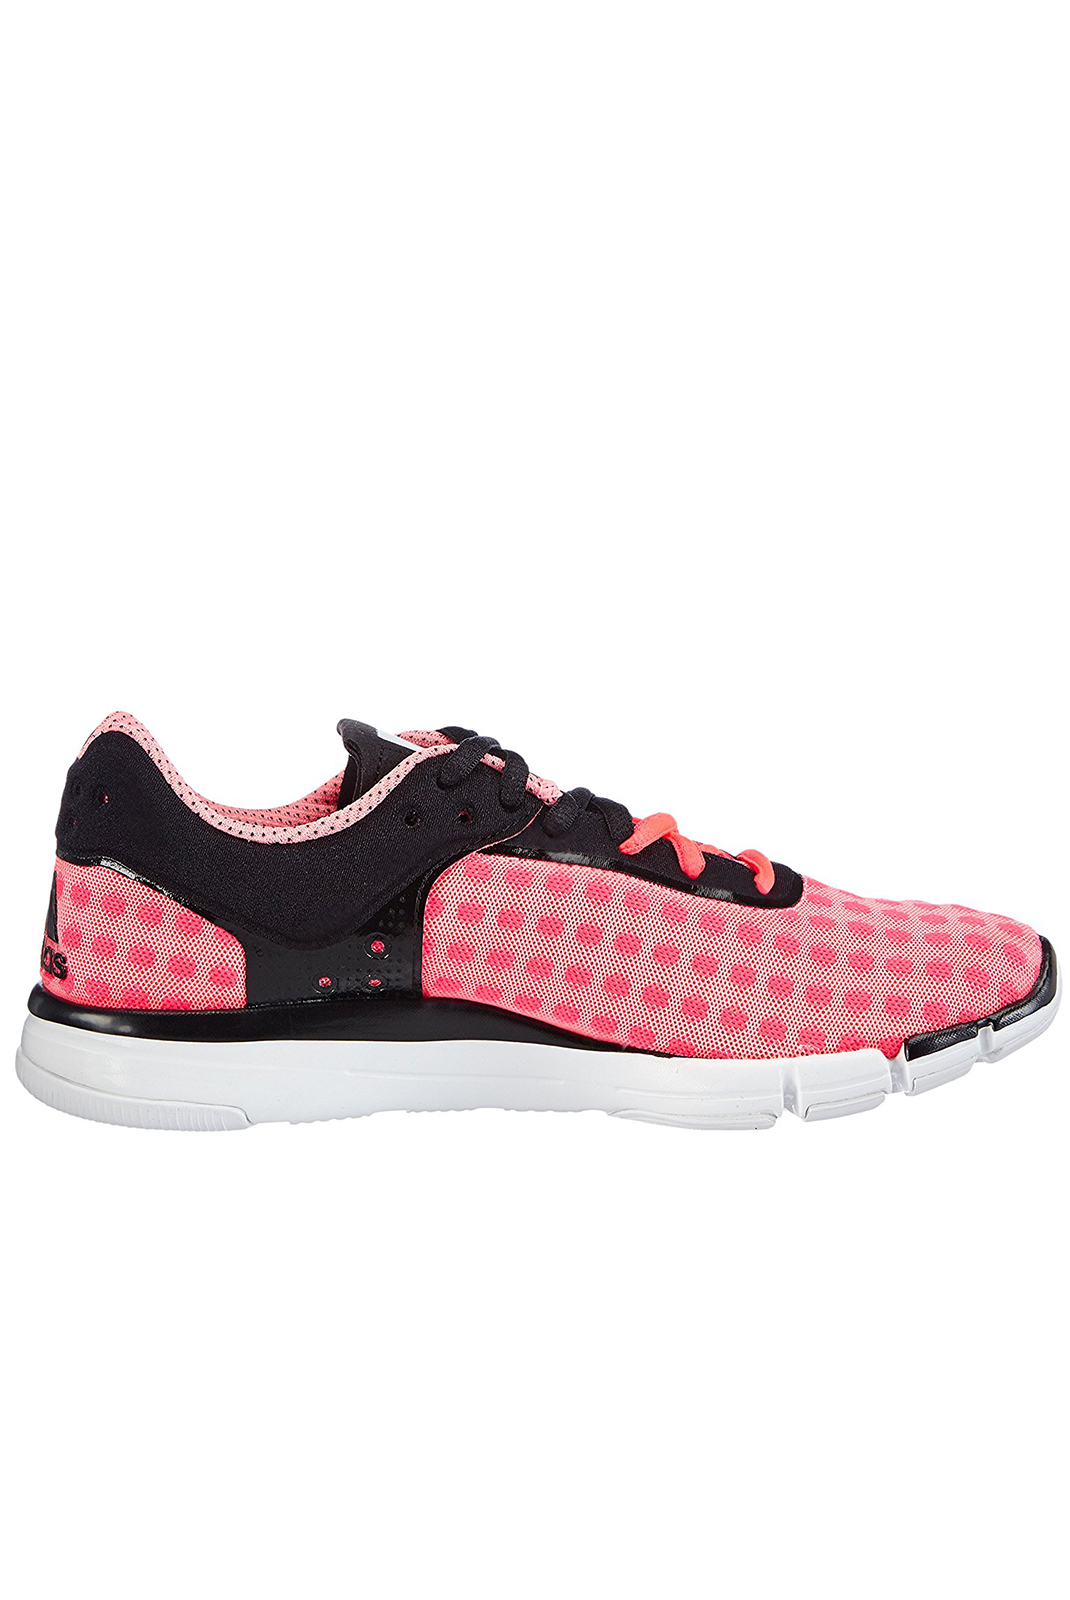 Baskets / Sneakers  Adidas B35922 ADIPURE 360.2 CHILL NOIR ROSE